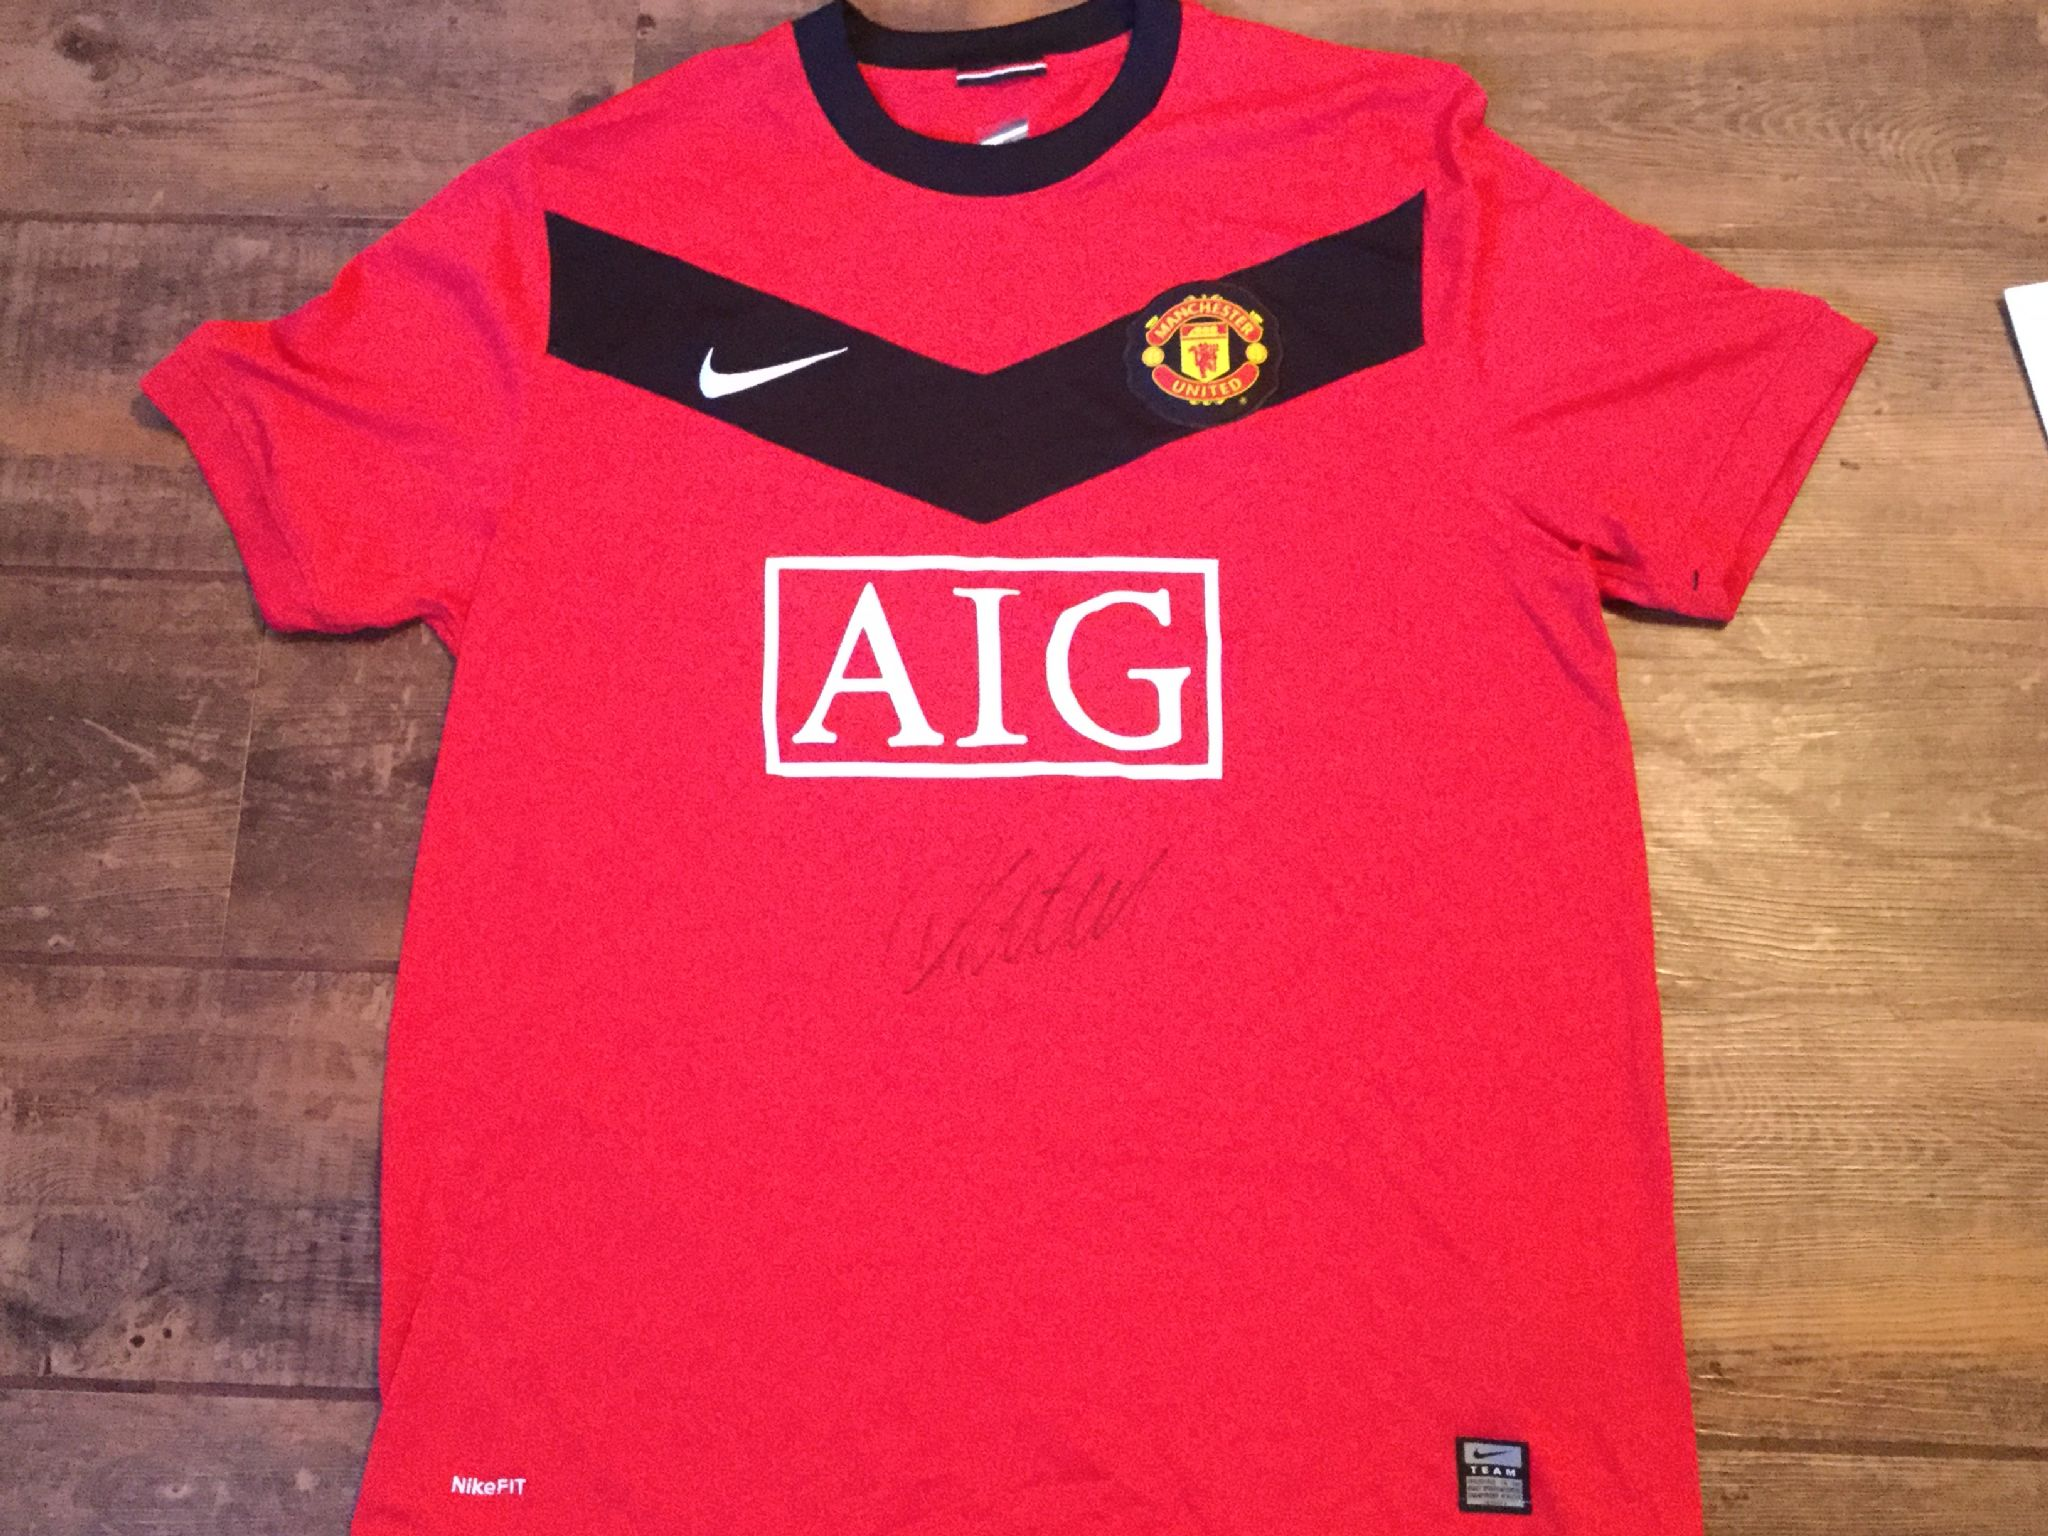 bdaba288088 Global Classic Football Shirts | 2009 Manchester United Vintage Old Soccer  Jerseys